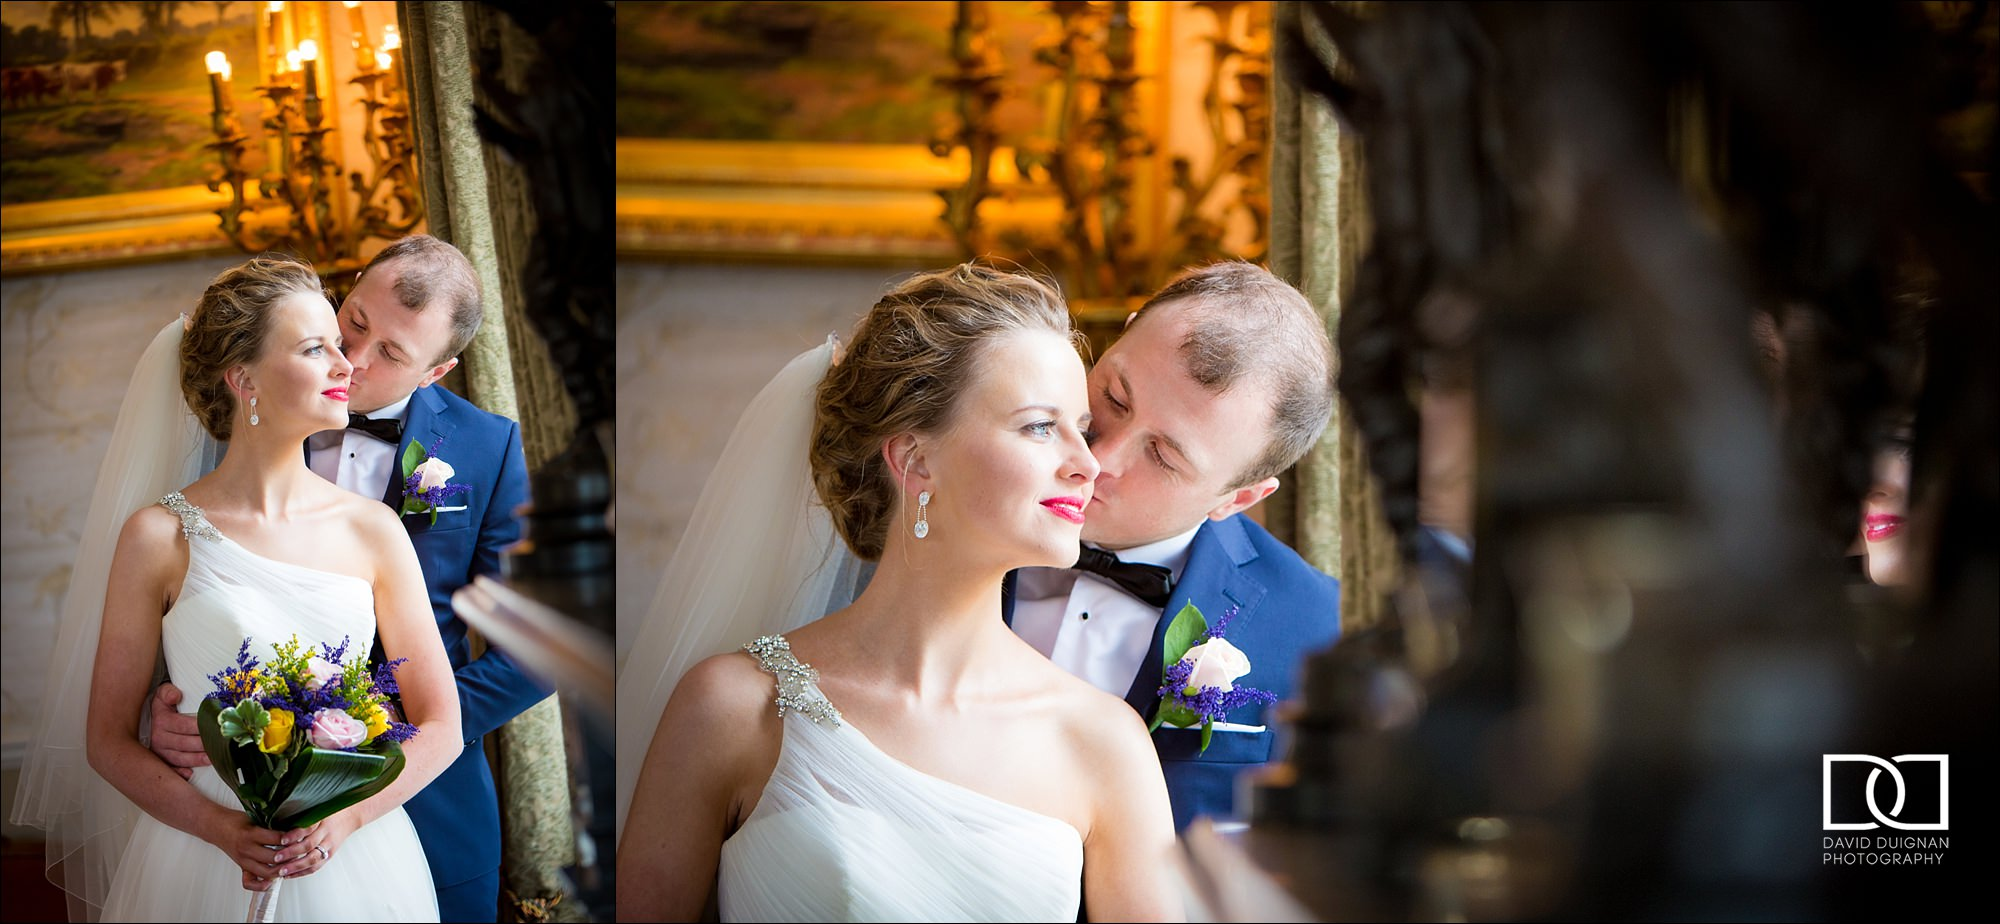 louth wedding photographer david duignan photography castle bellingham wedding Ireland 0049